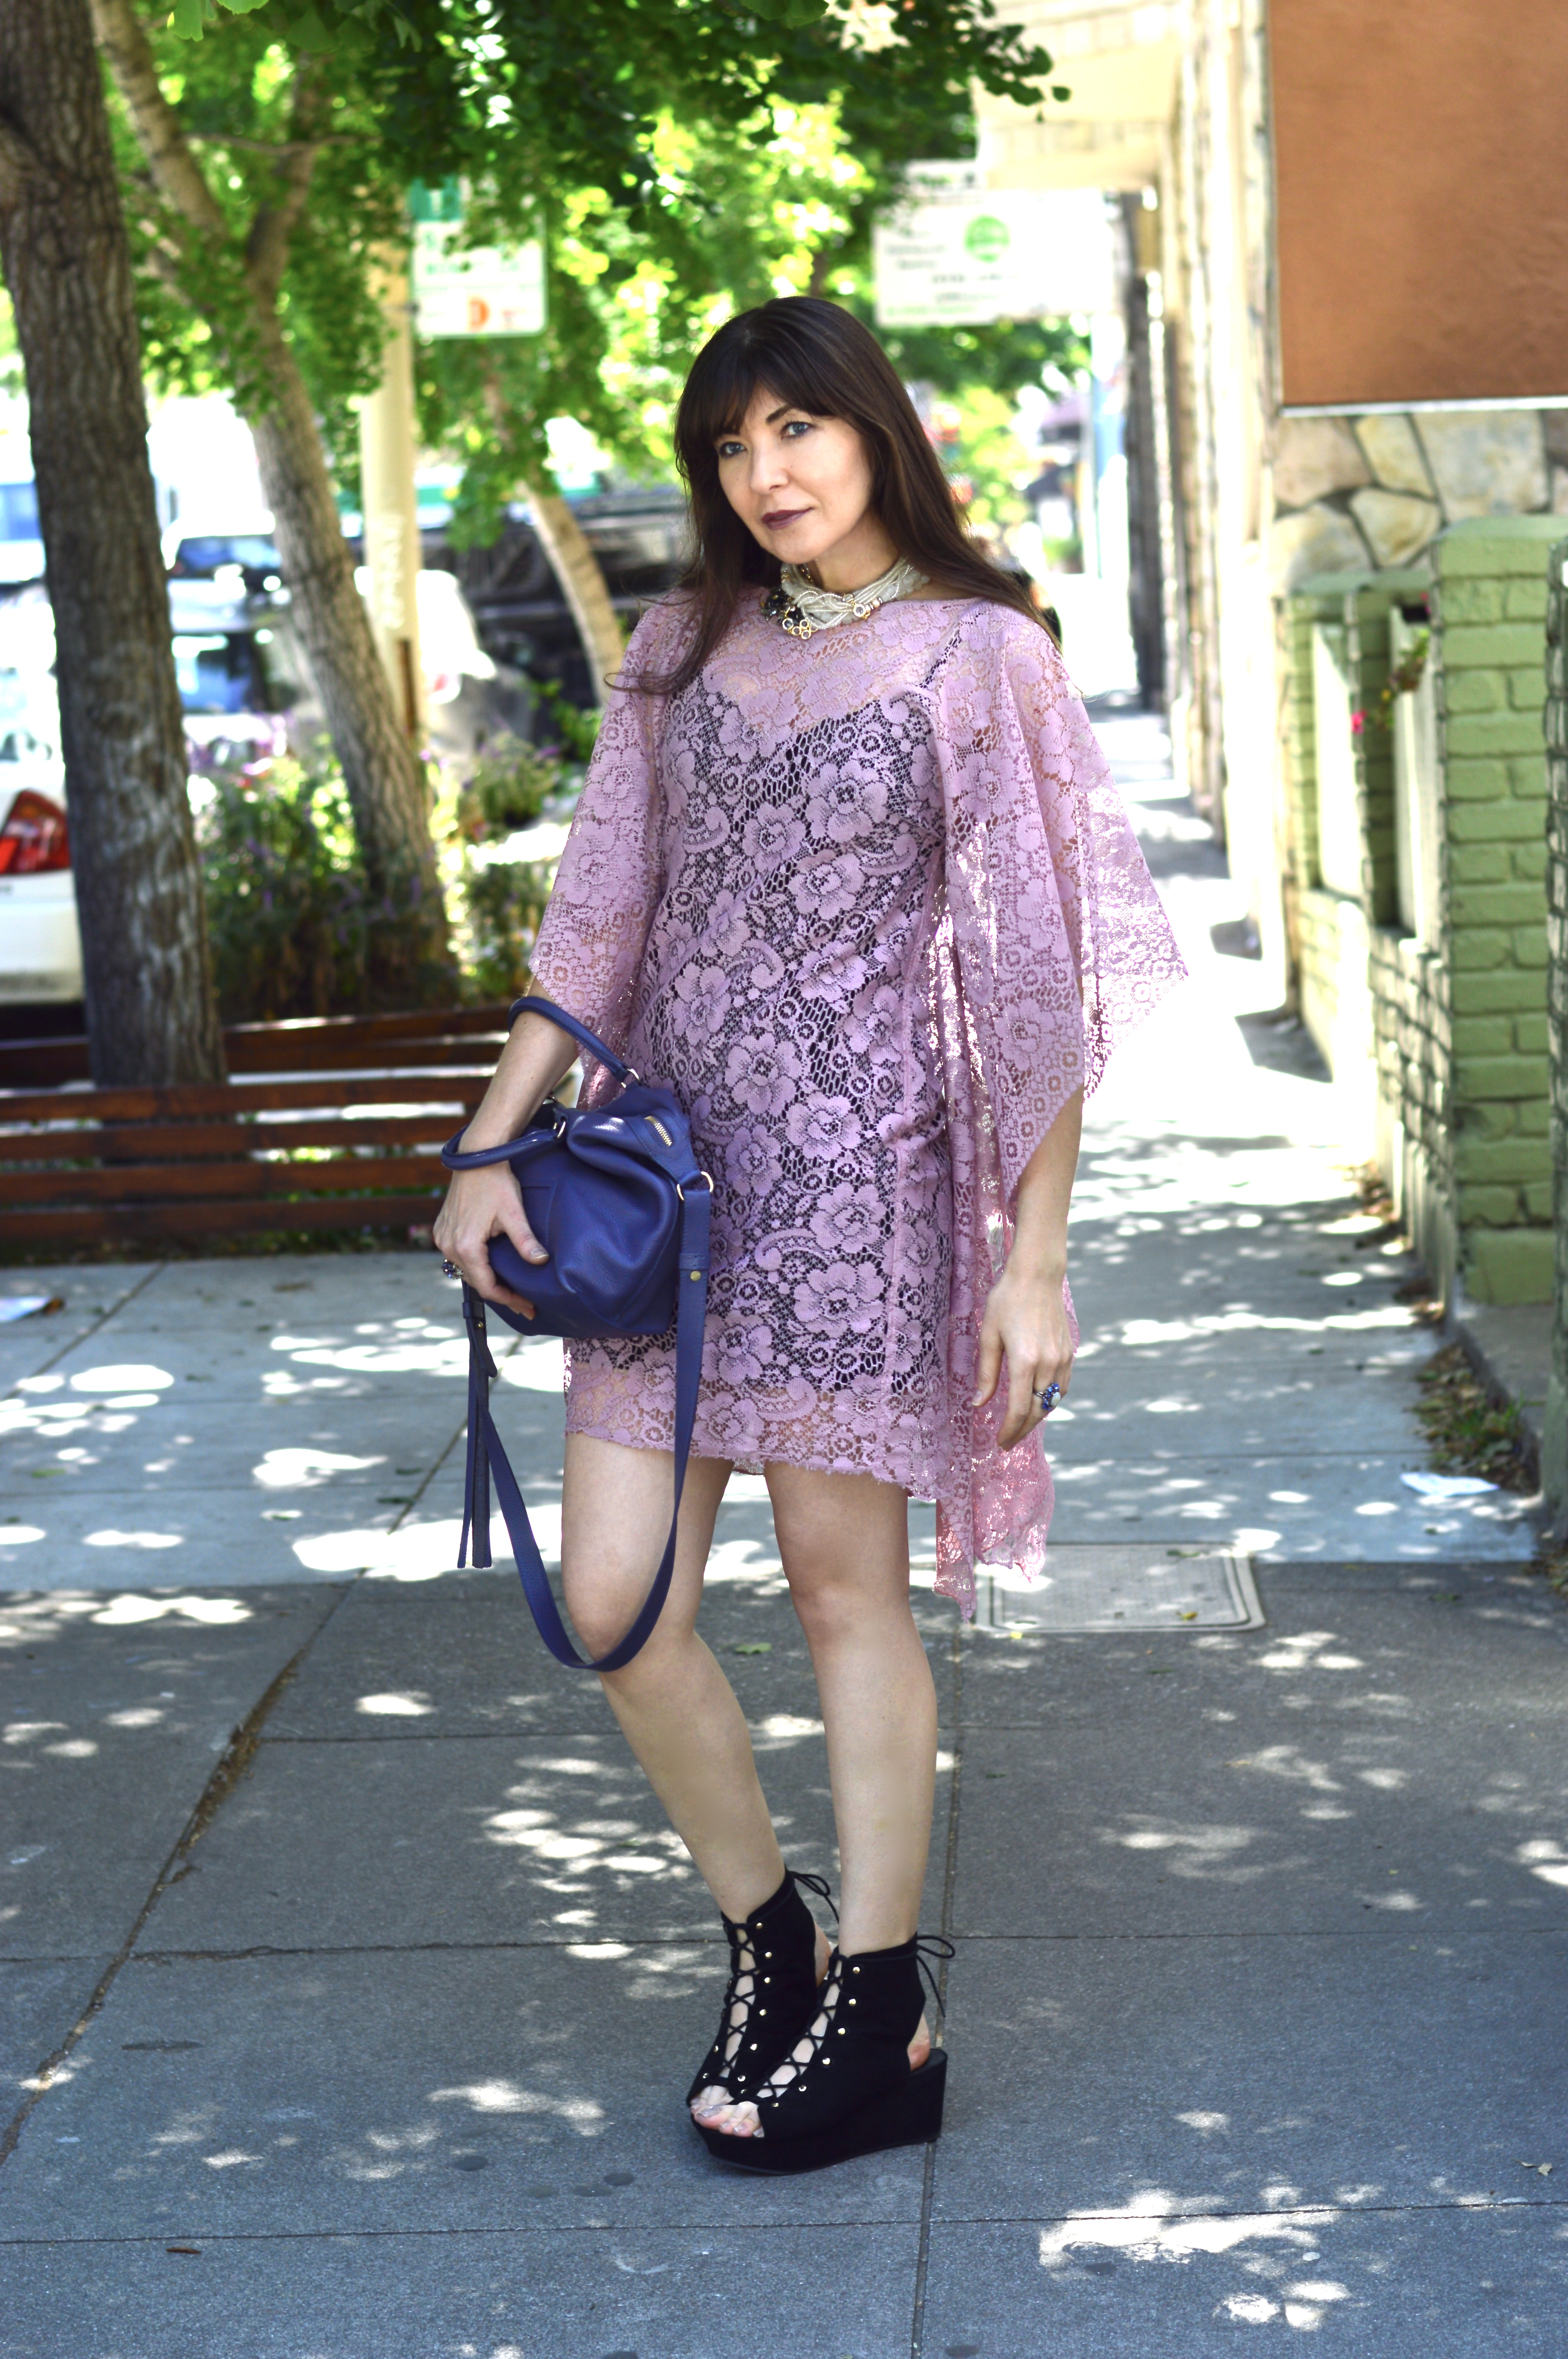 Lace dress and Sasha Maks Vintage rhinestone jewelry.